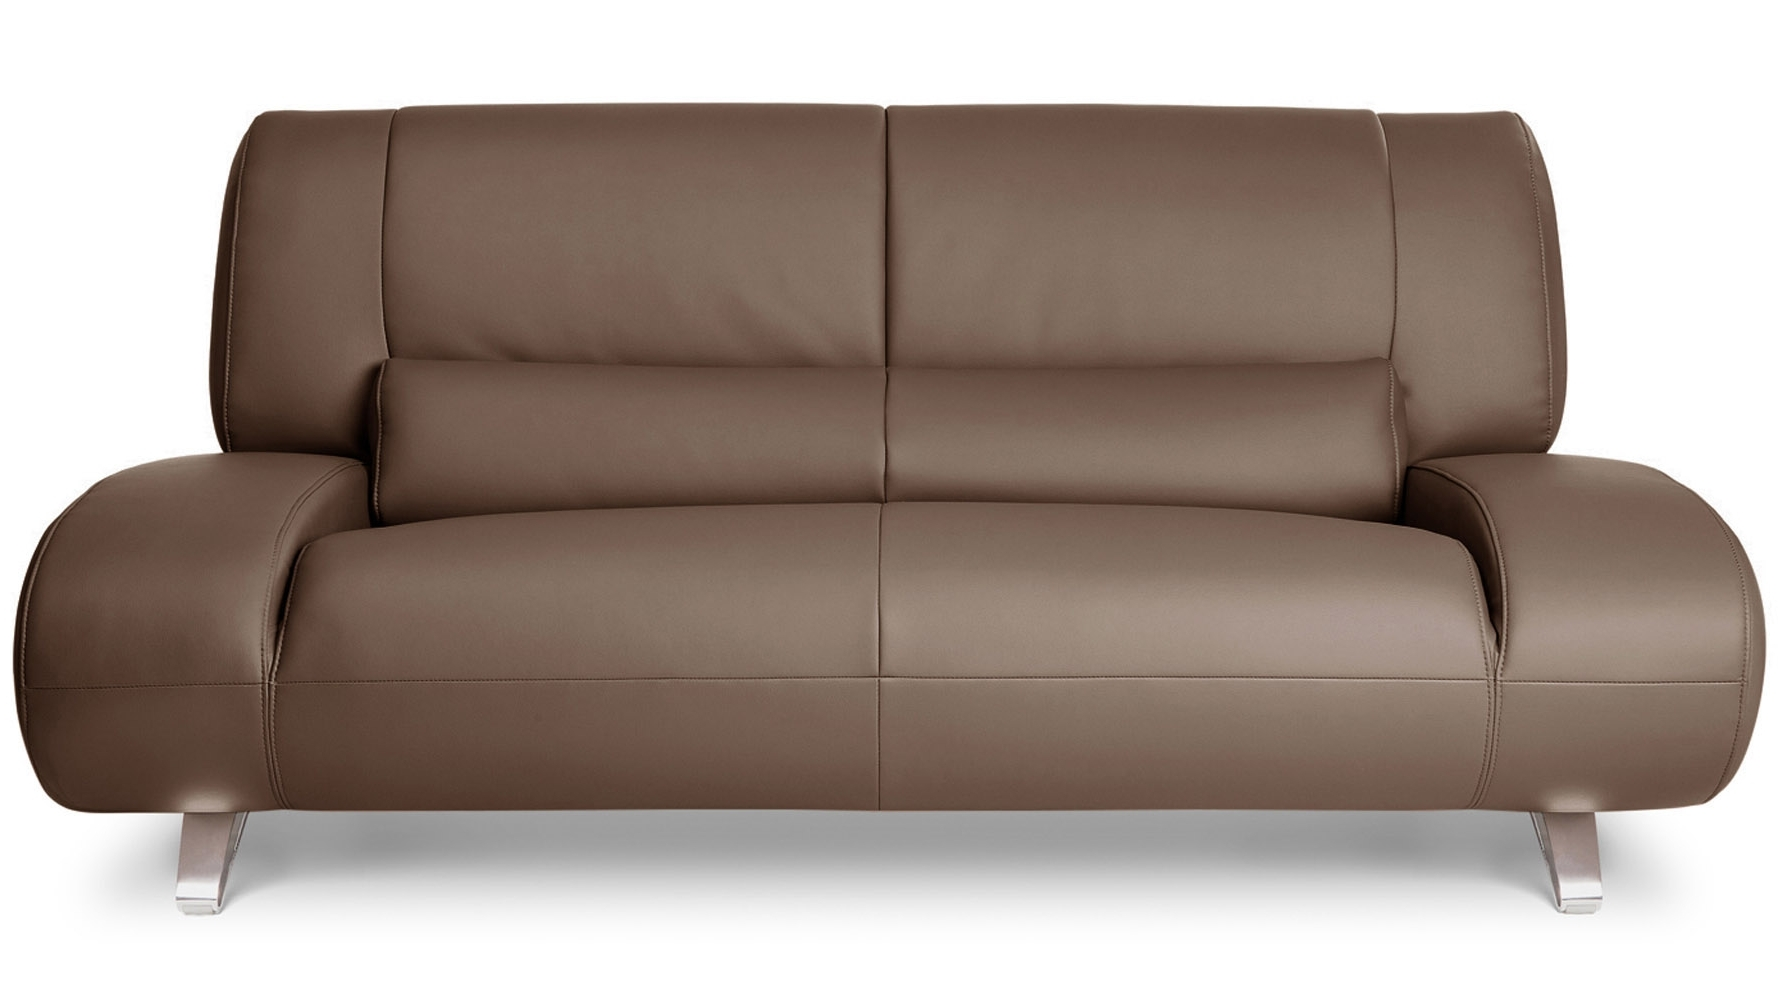 Fashionable Aspen Leather Sofas For Brown Aspen Leather Sofa Set With Loveseat And Chair (View 5 of 20)